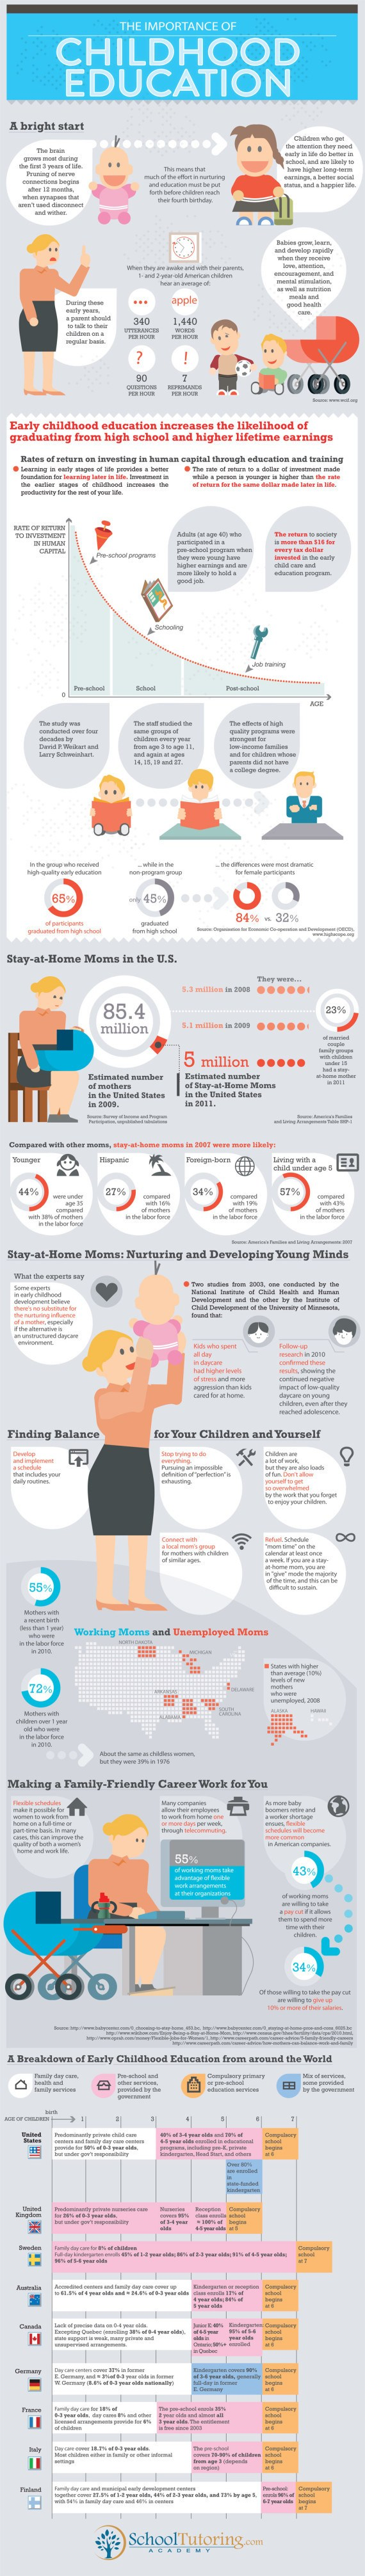 Why Childhood Education Is Important Infographic